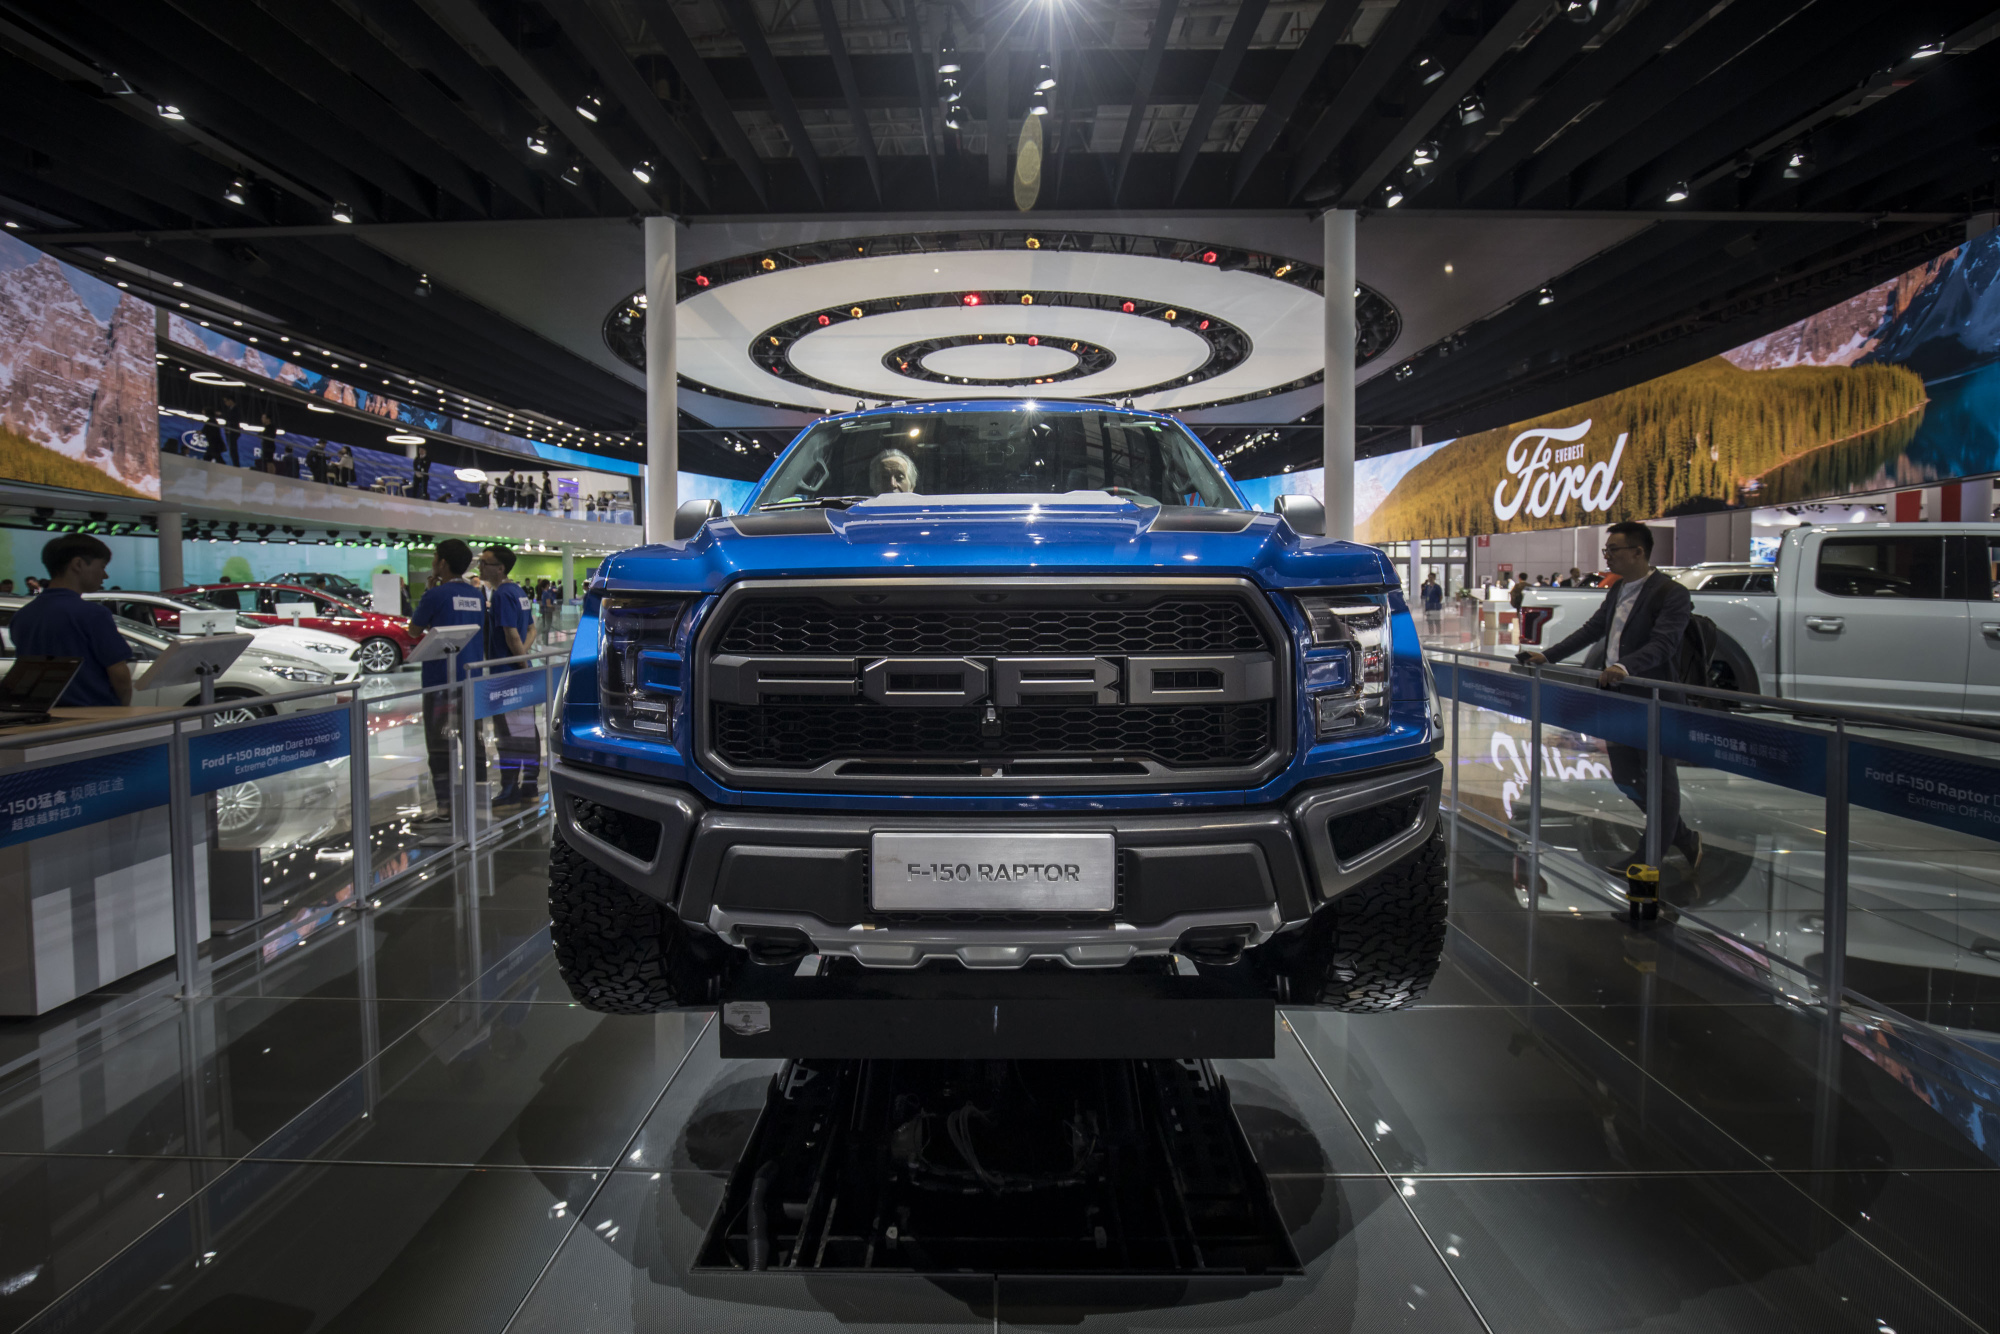 Ford wins truck bragging rights while GM rolls out new big rigs